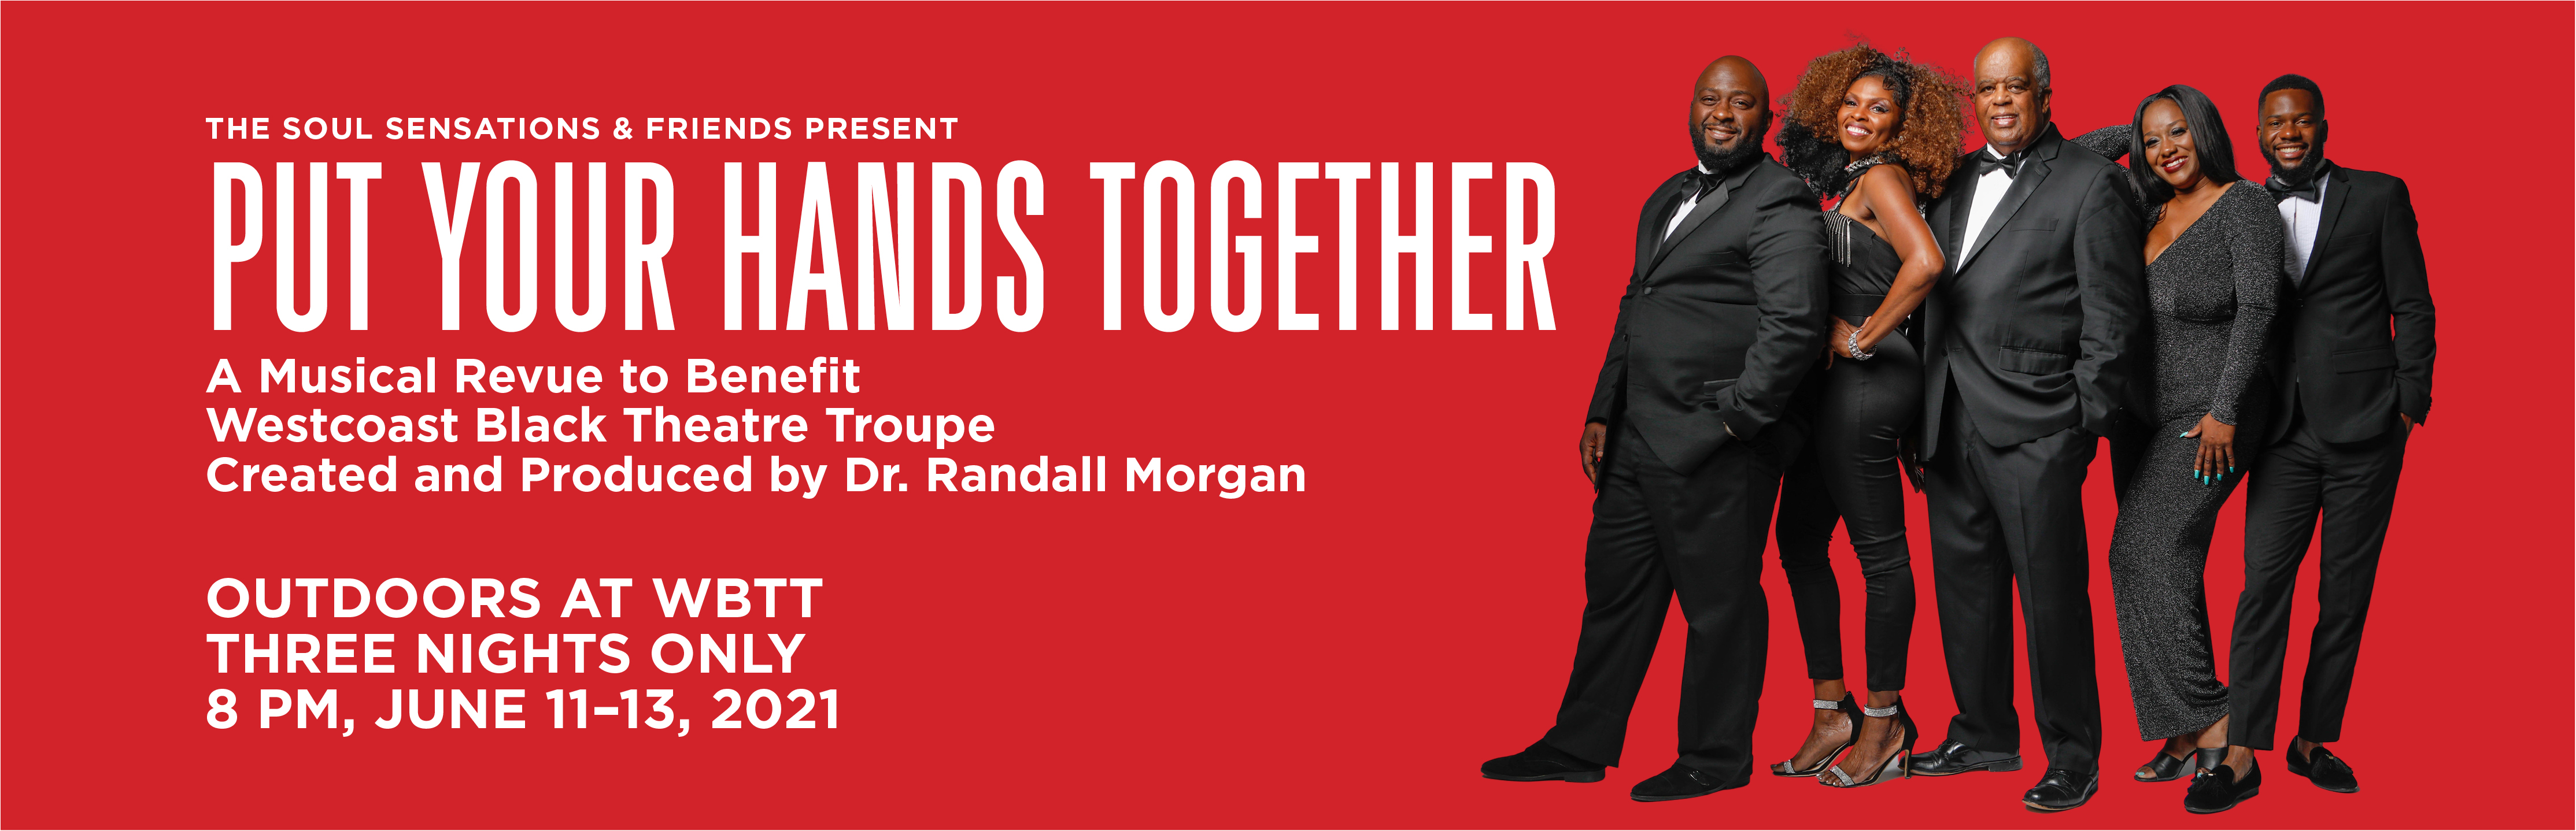 The Soul Sensations and Friends Present Put Your Hands Together June 11-13 8 pm